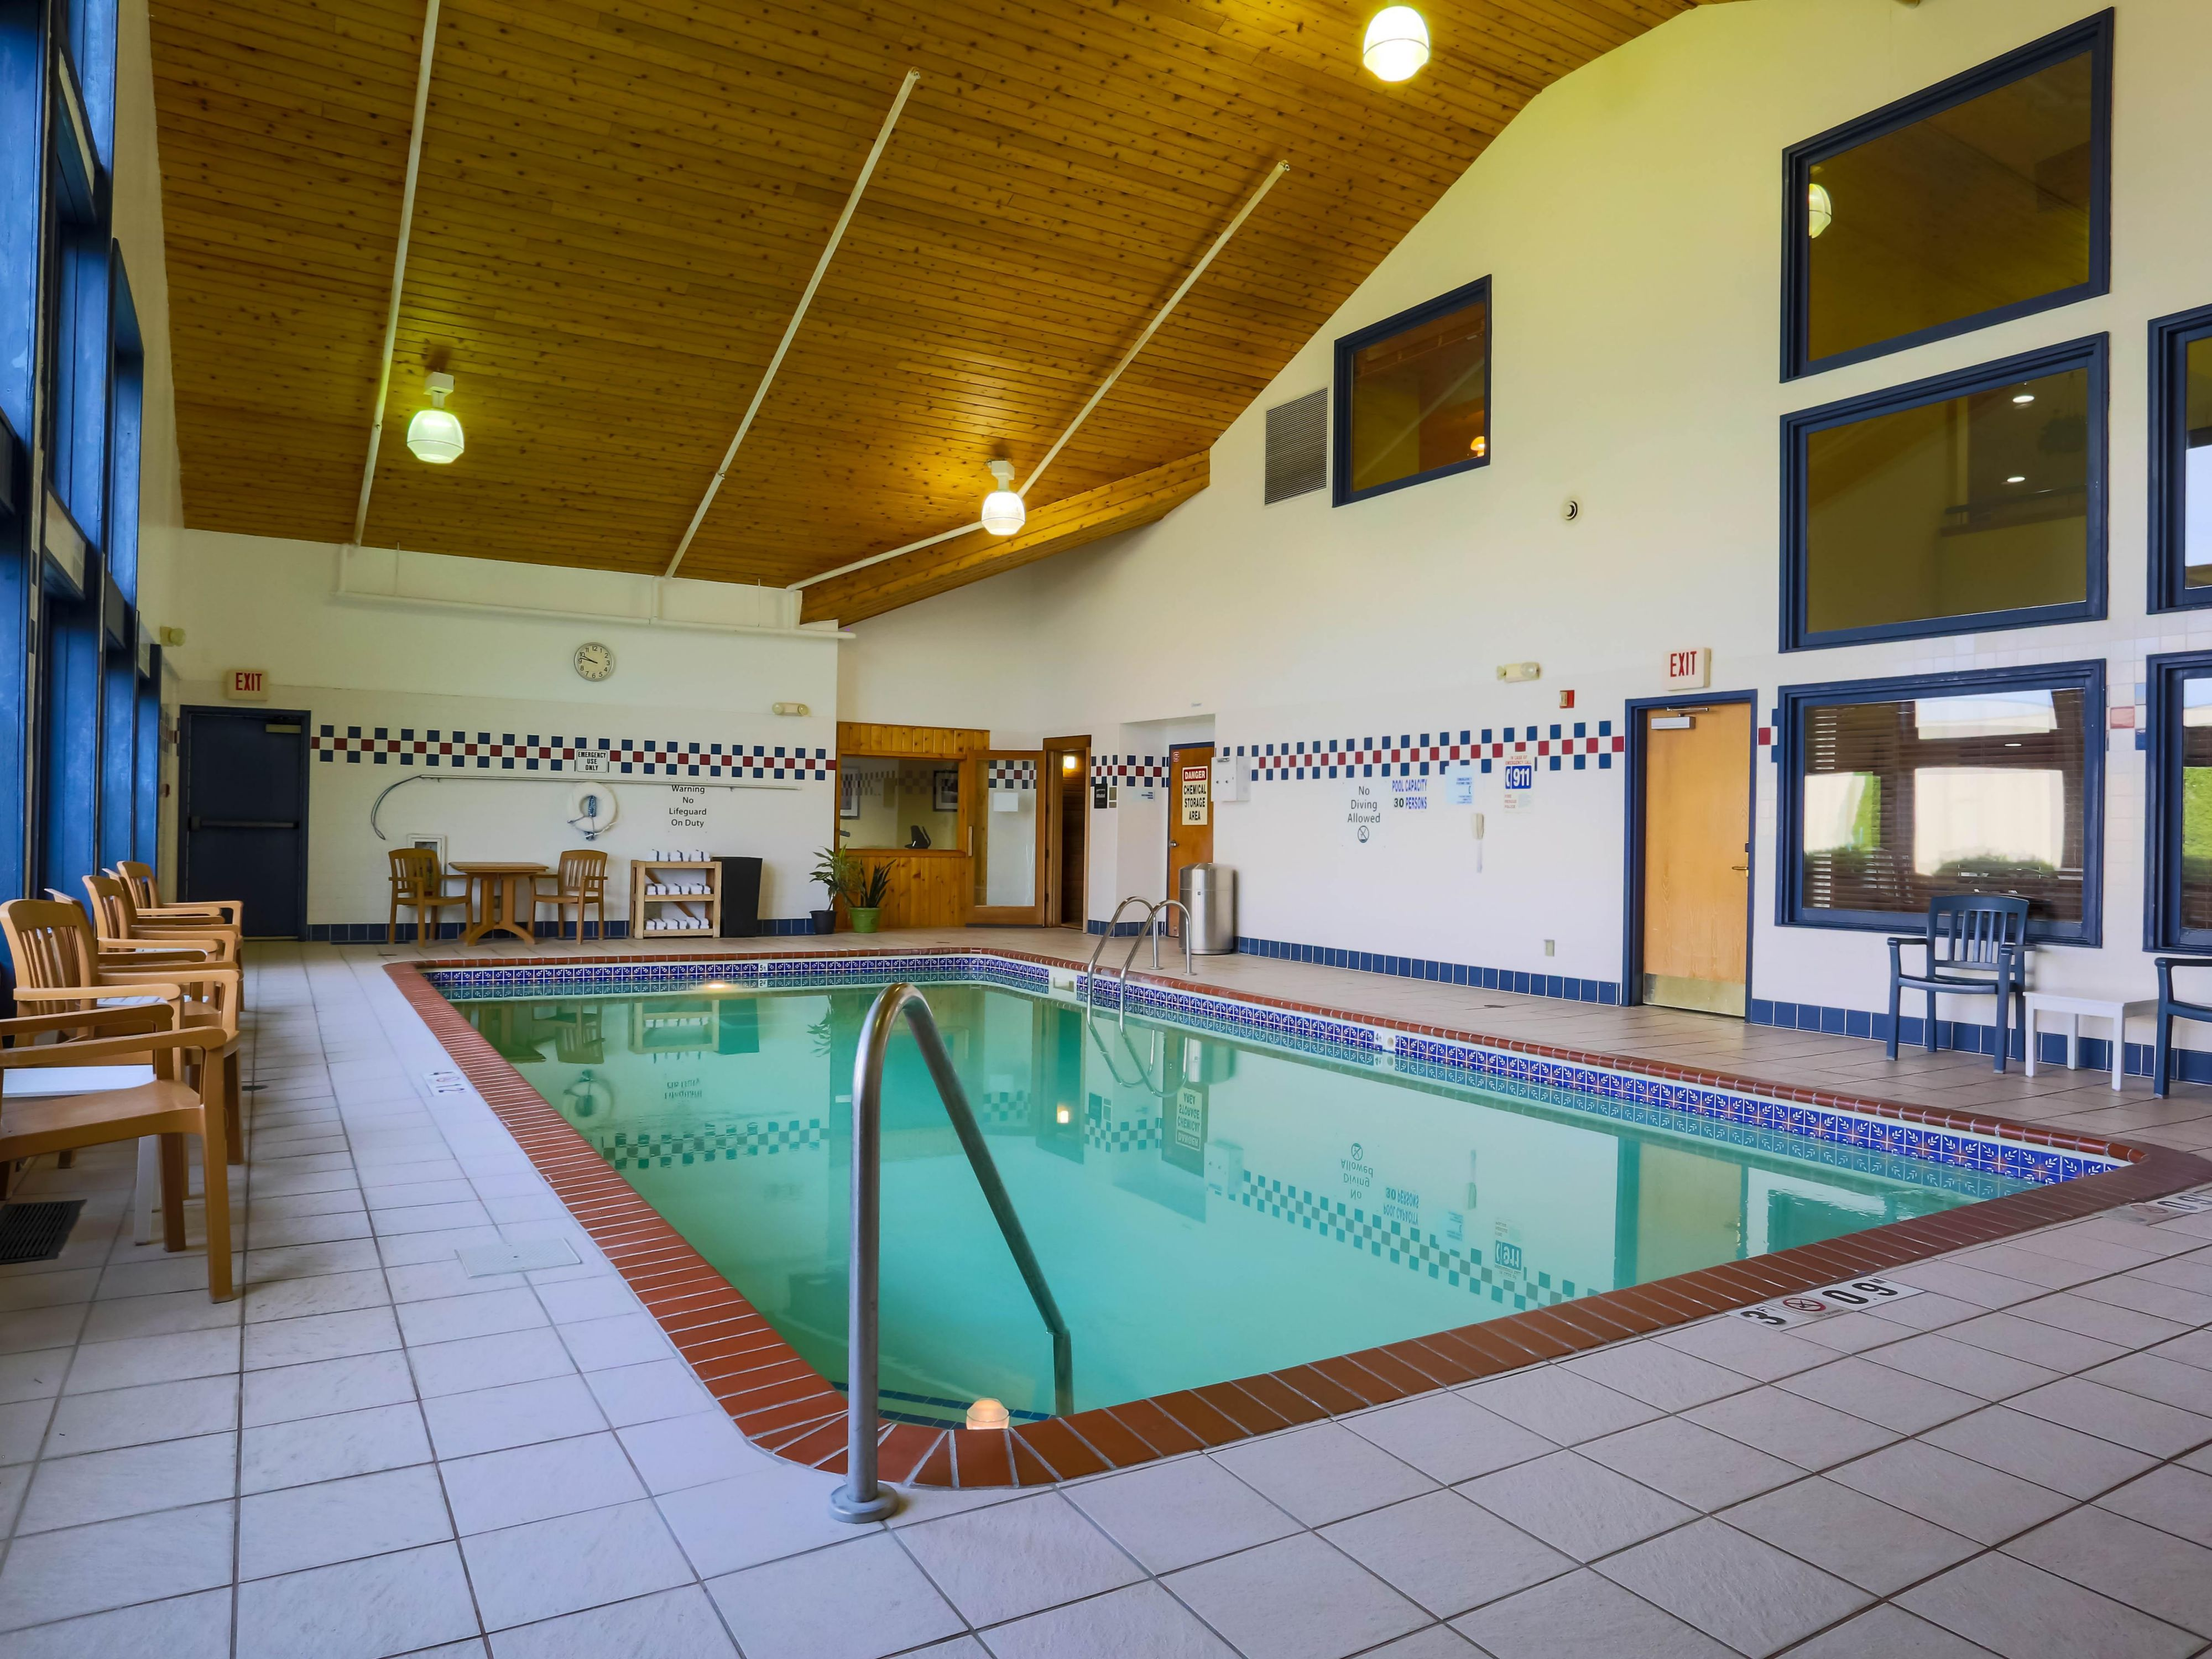 Indoor Pool, Hot Tub and Sauna